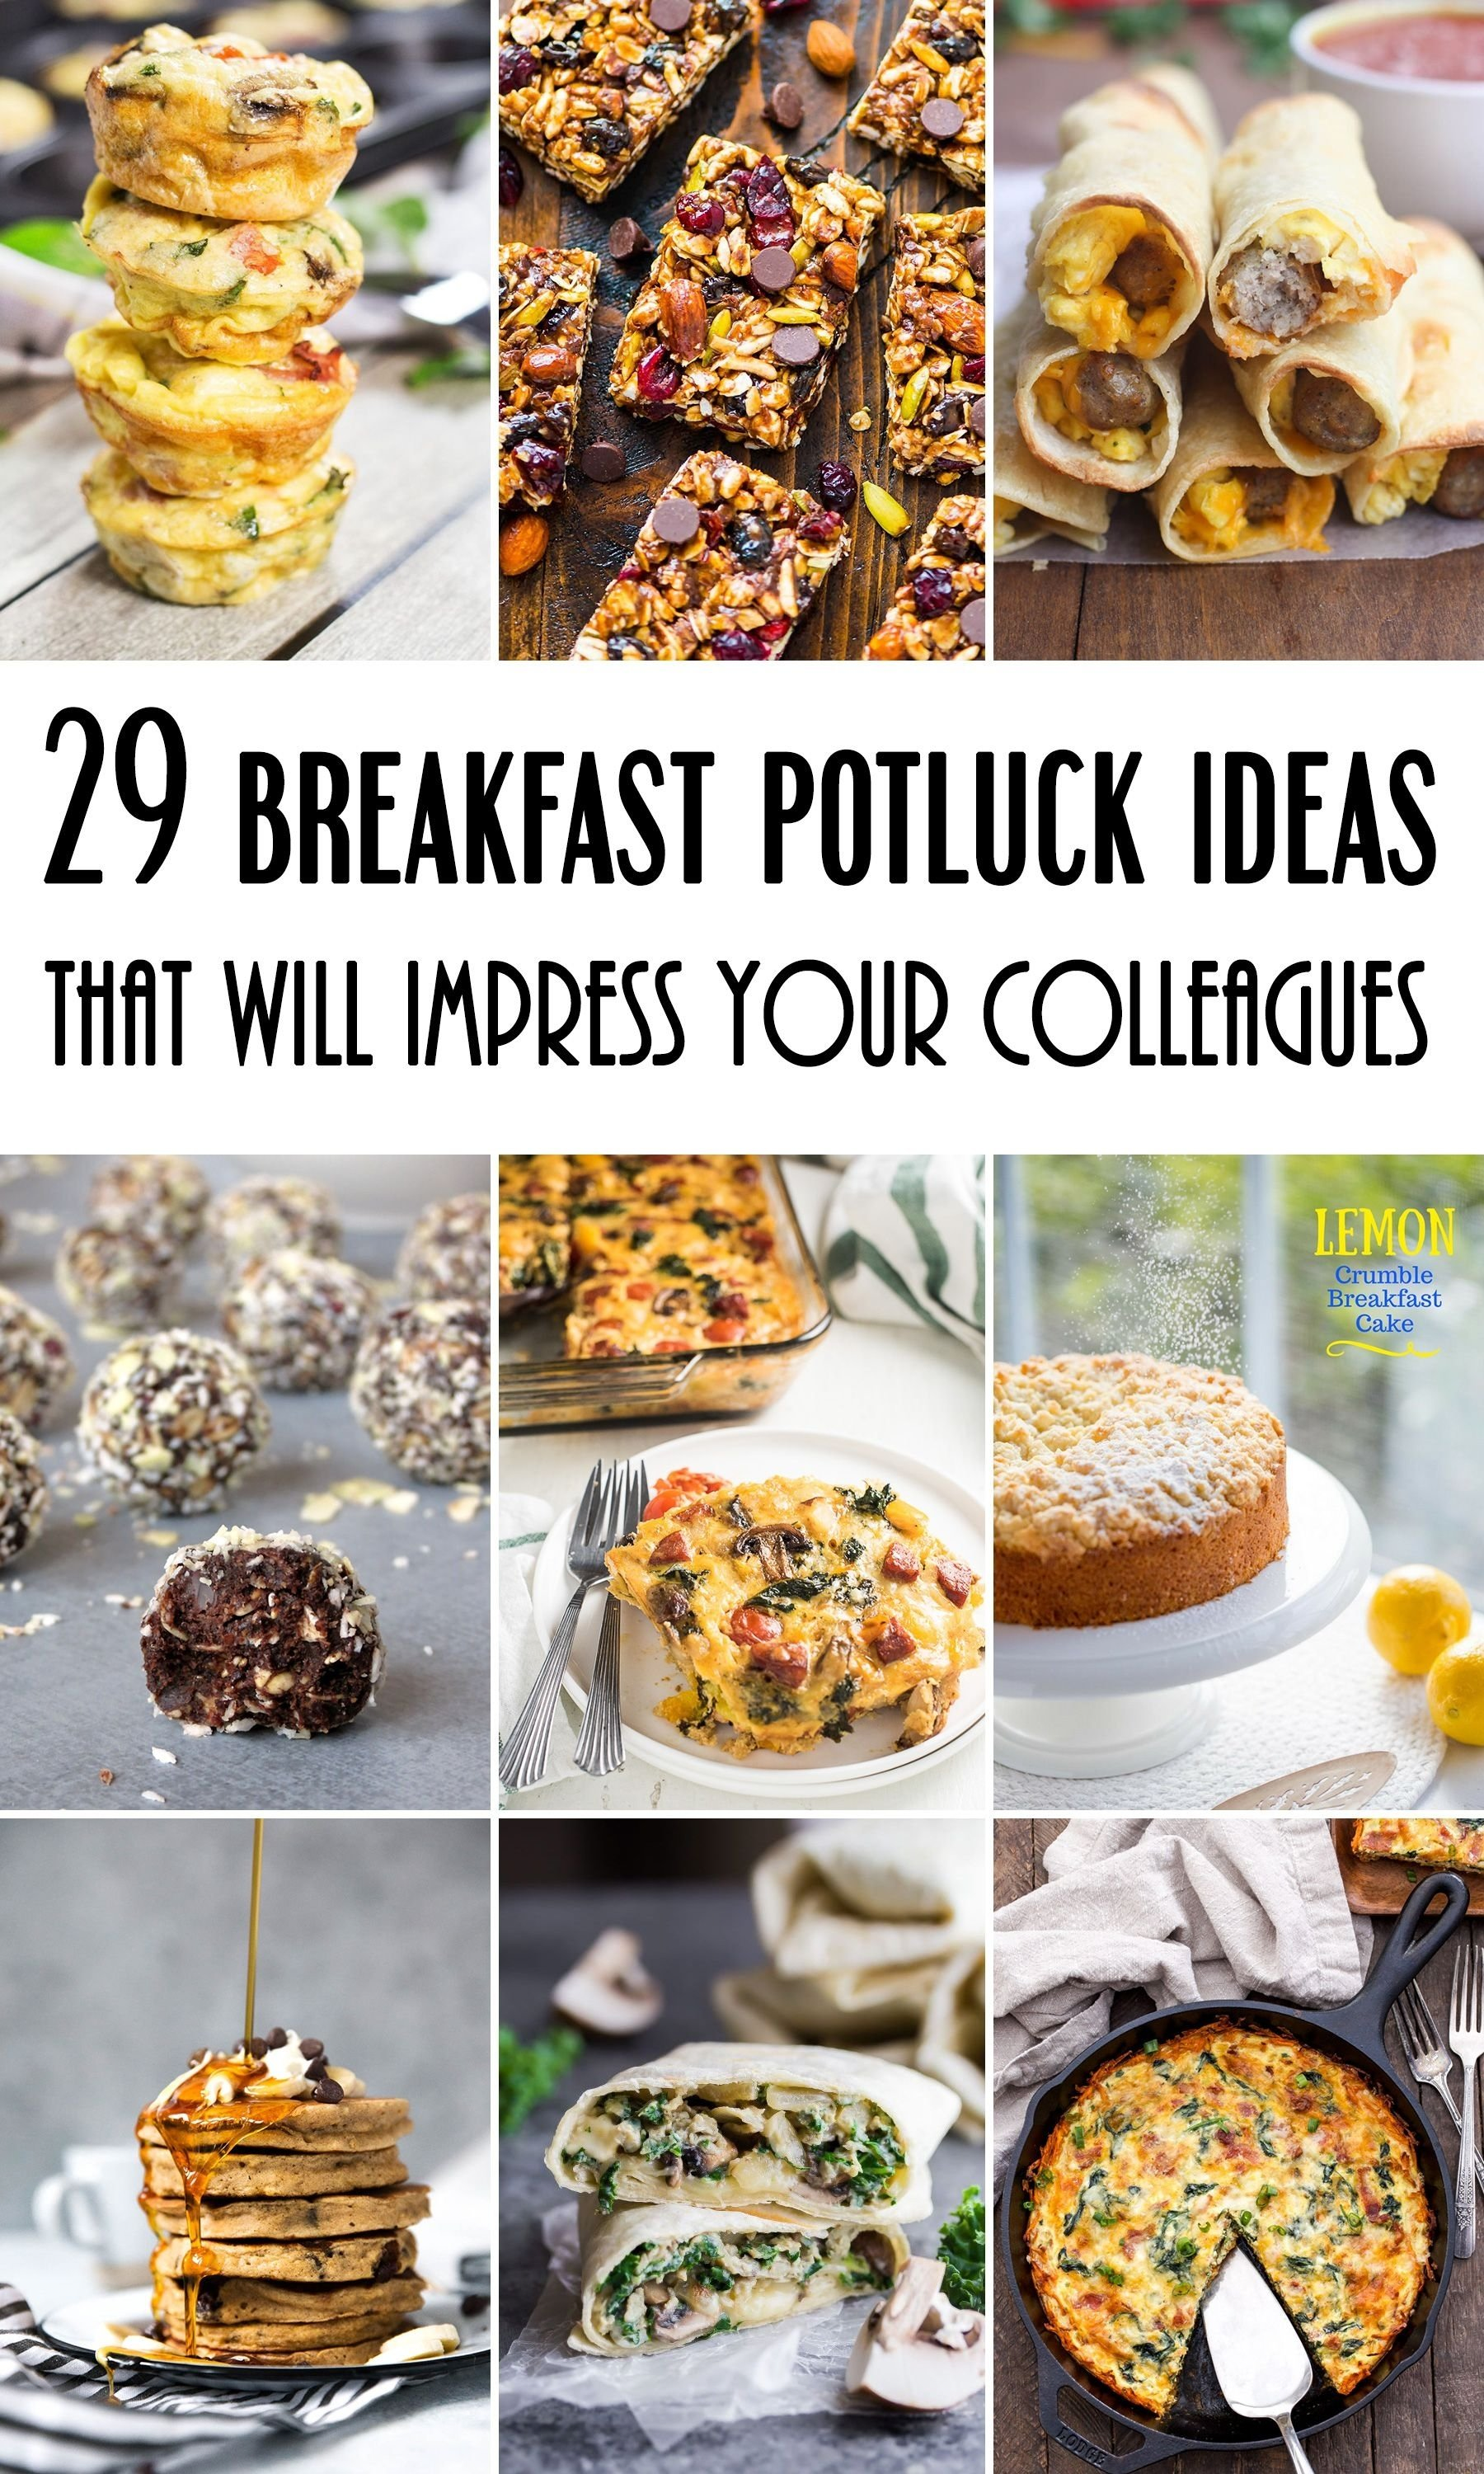 10 Cute Potluck Lunch Ideas For Work 29 breakfast potluck ideas for work that will impress your 1 2021